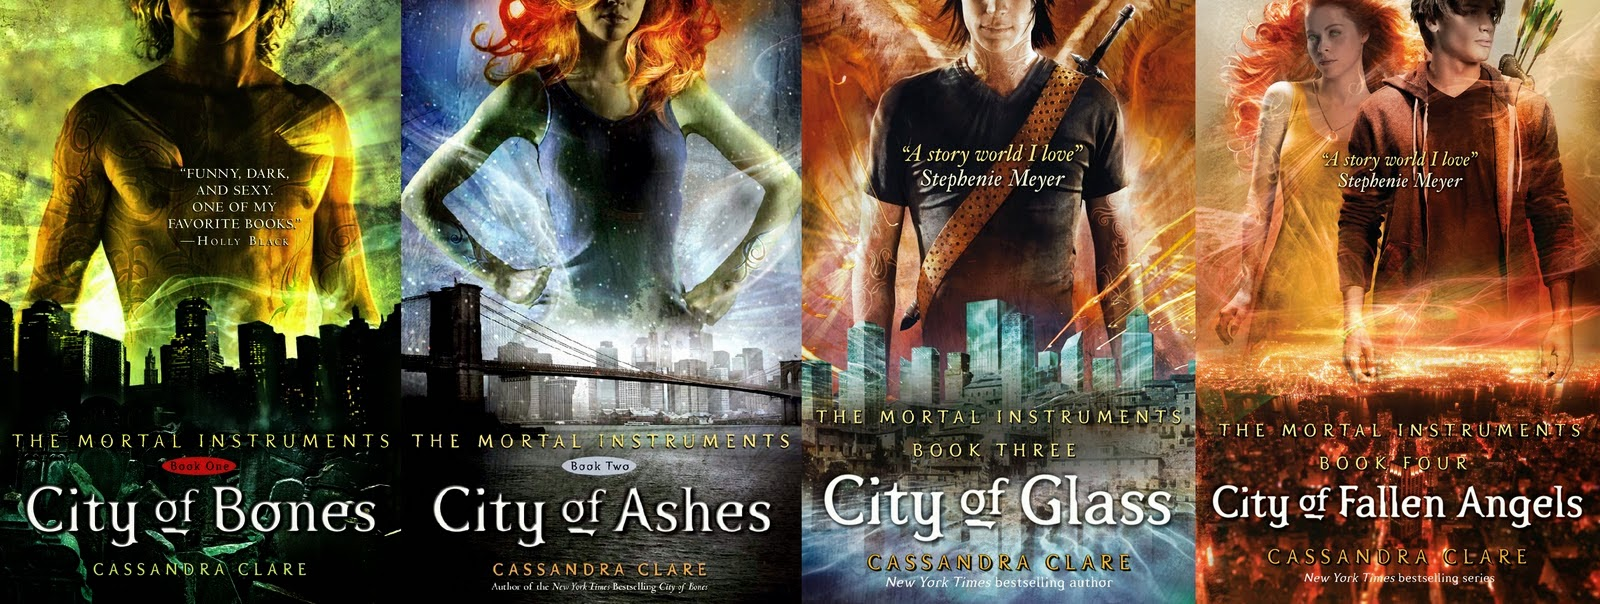 The-Mortal-Instruments.jpg